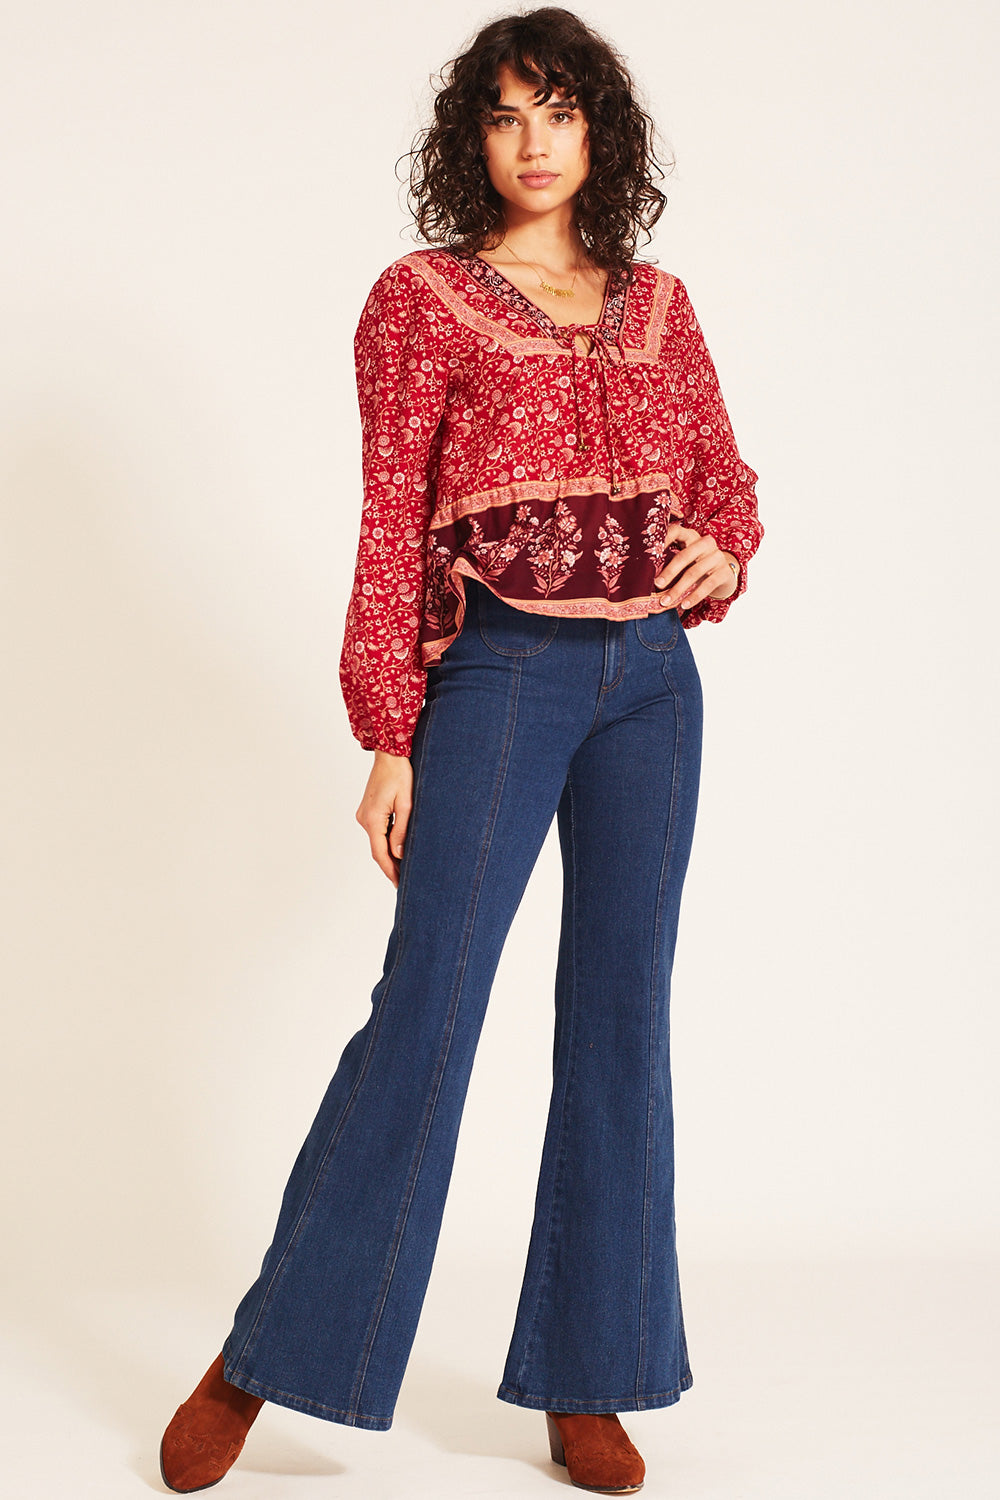 Wisteria Blouse in Crimson